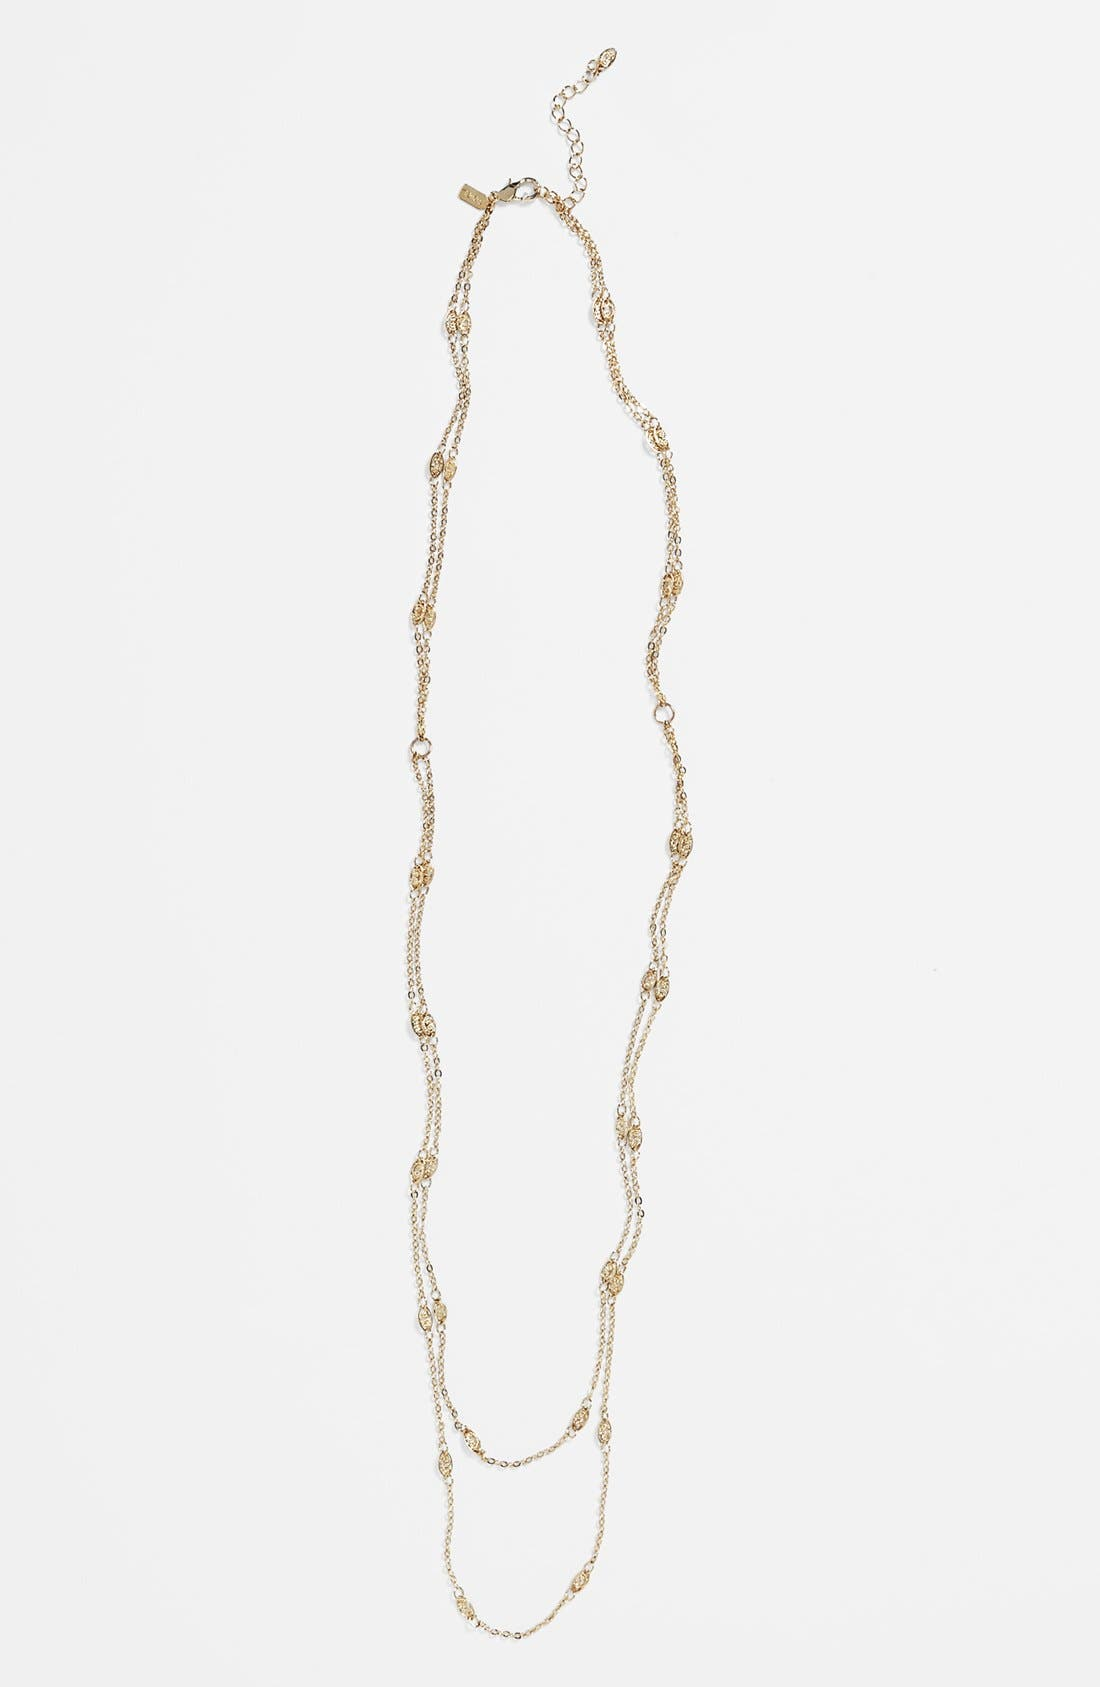 Main Image - Rachel Layering Chain Necklace